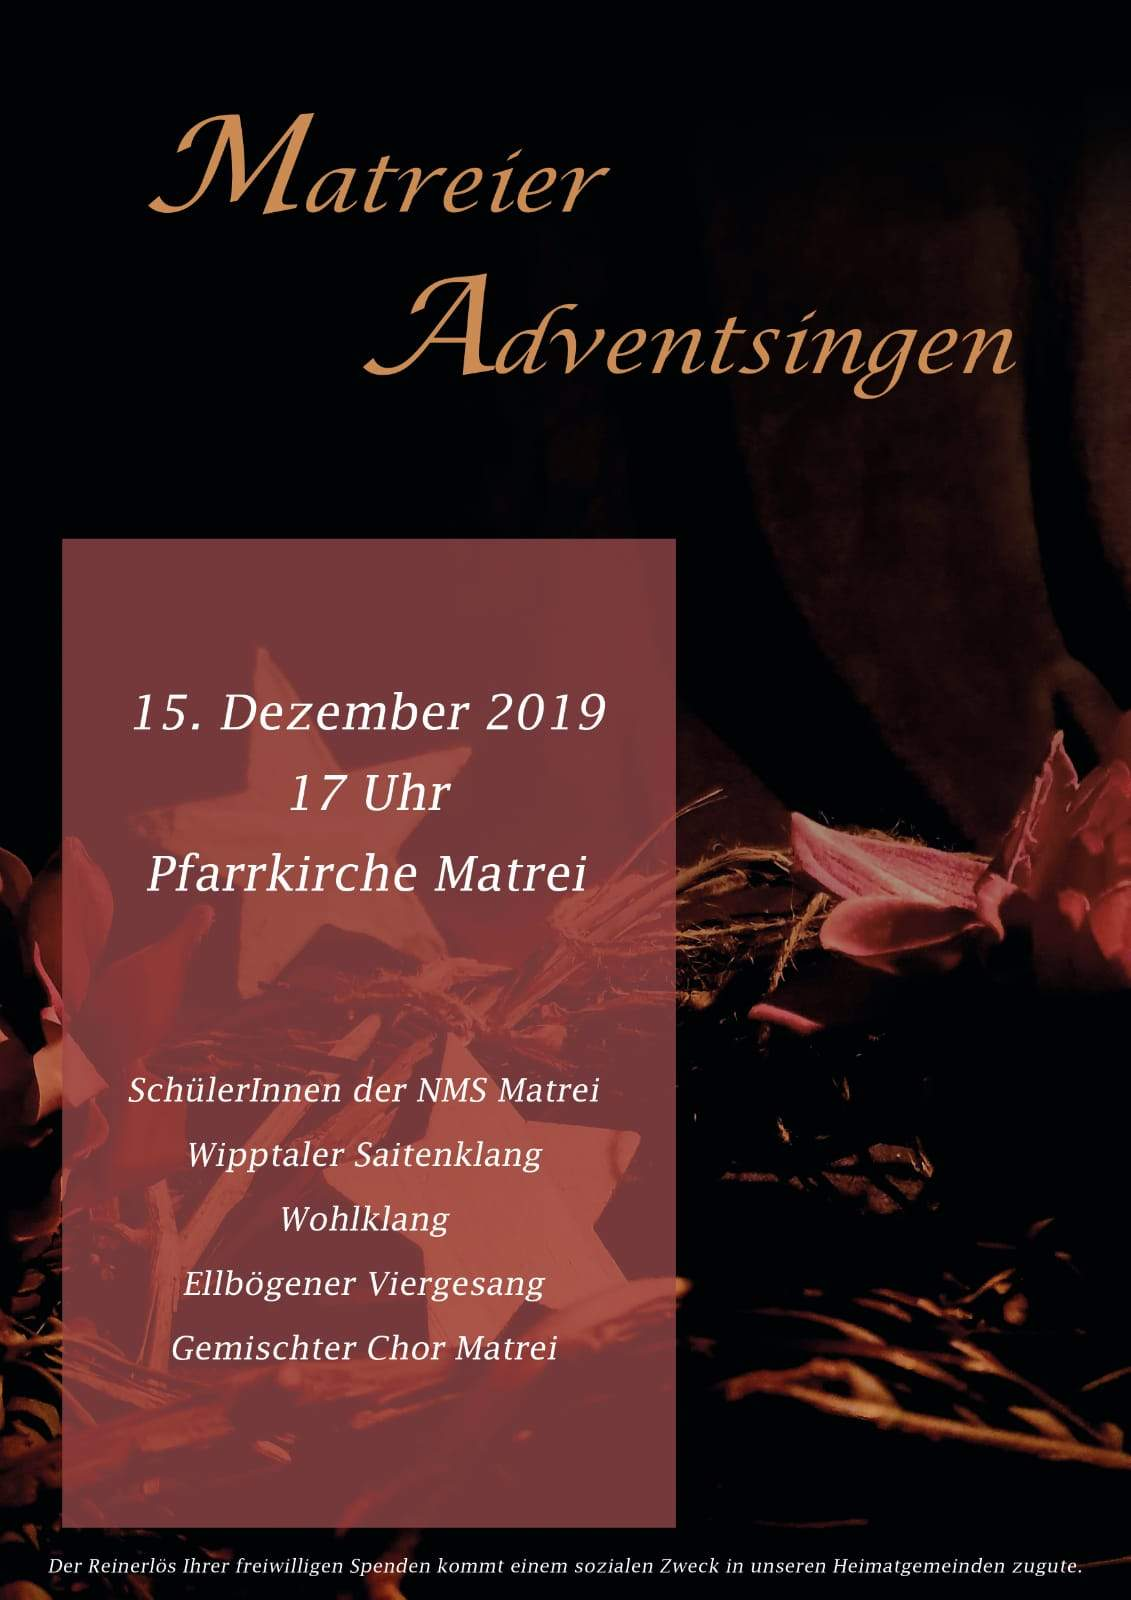 2019 Matreier Adventsingen Plakat